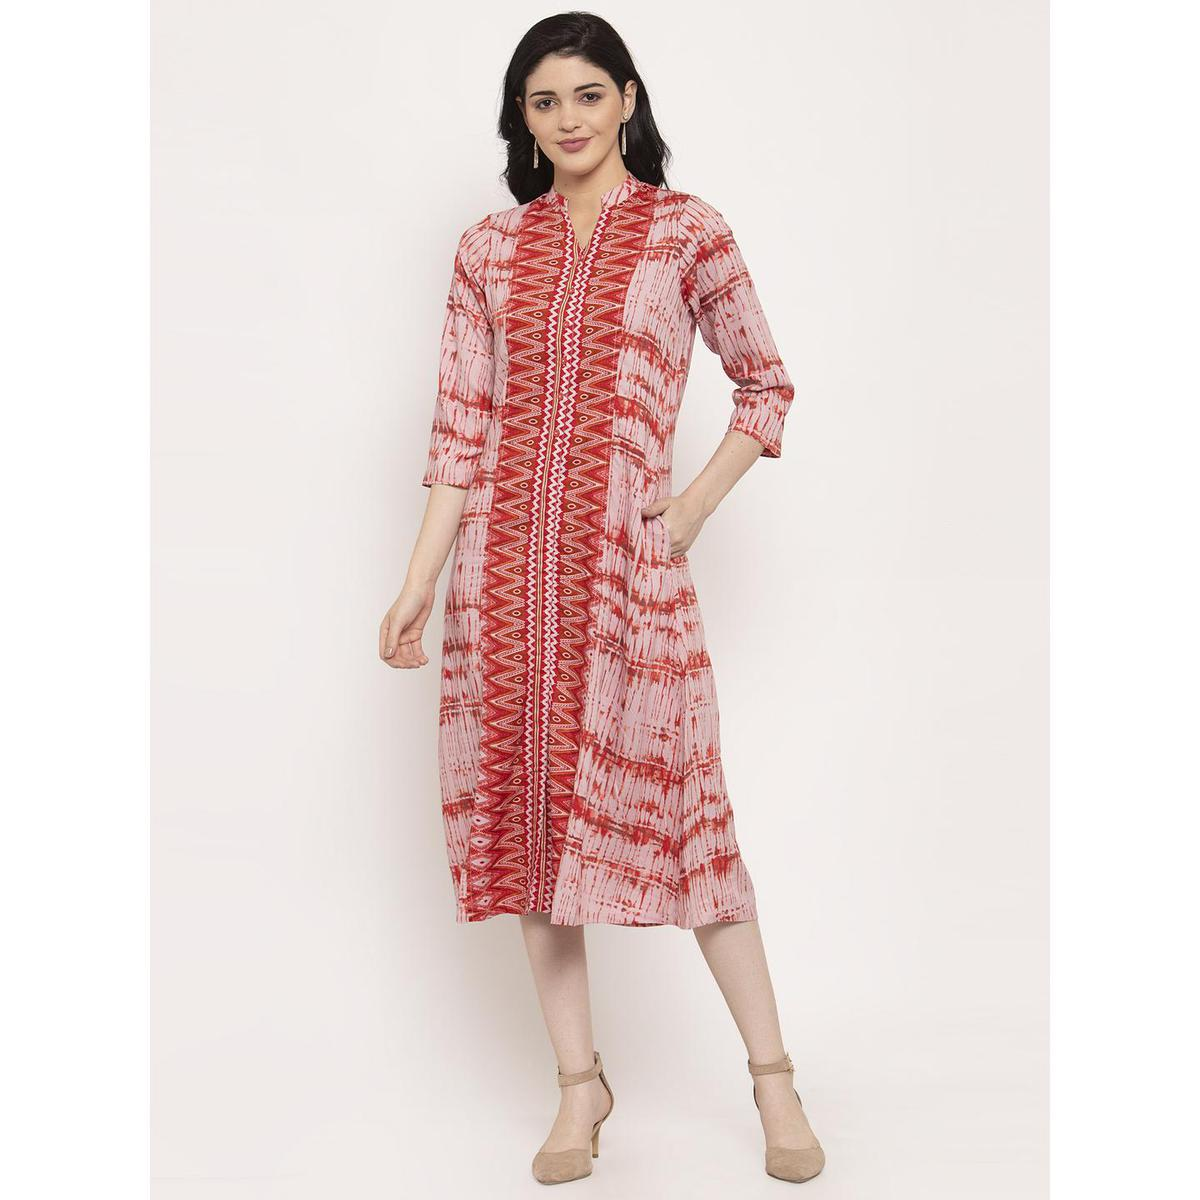 Ayaany - Pink-Red Colored Casual Wear Printed Cotton Dress